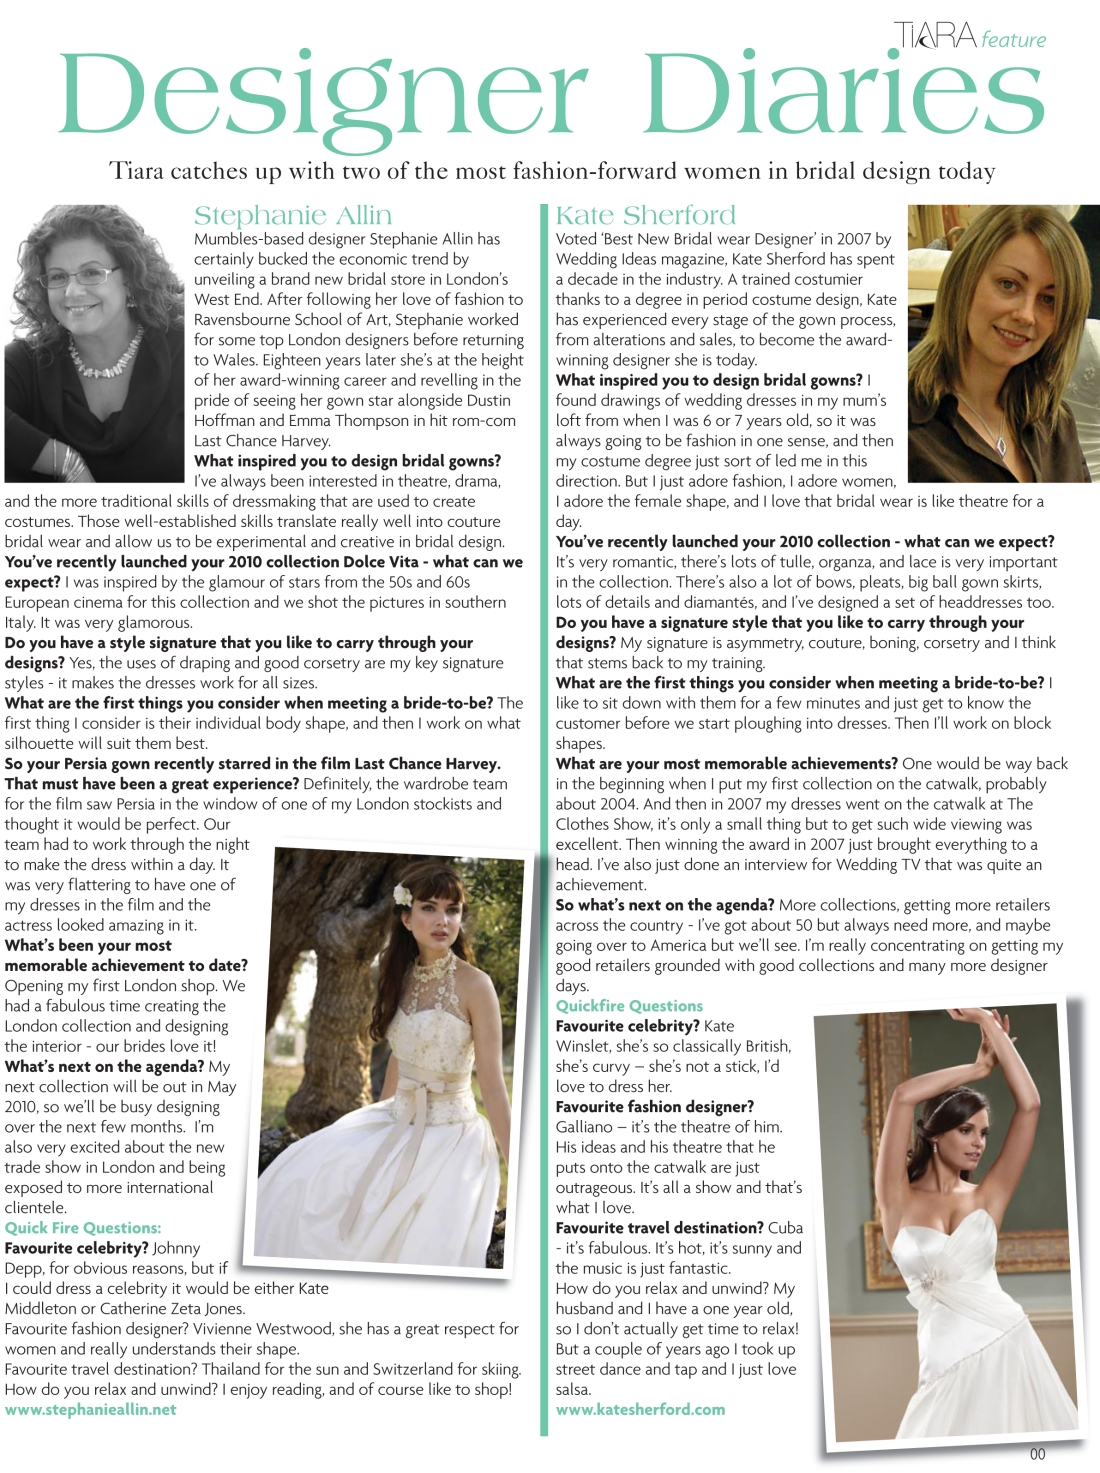 Interview with bridal designers Stephanie Allin and Kate Sherford - Tiara magazine Spring 2010 issue - Amy Lewis